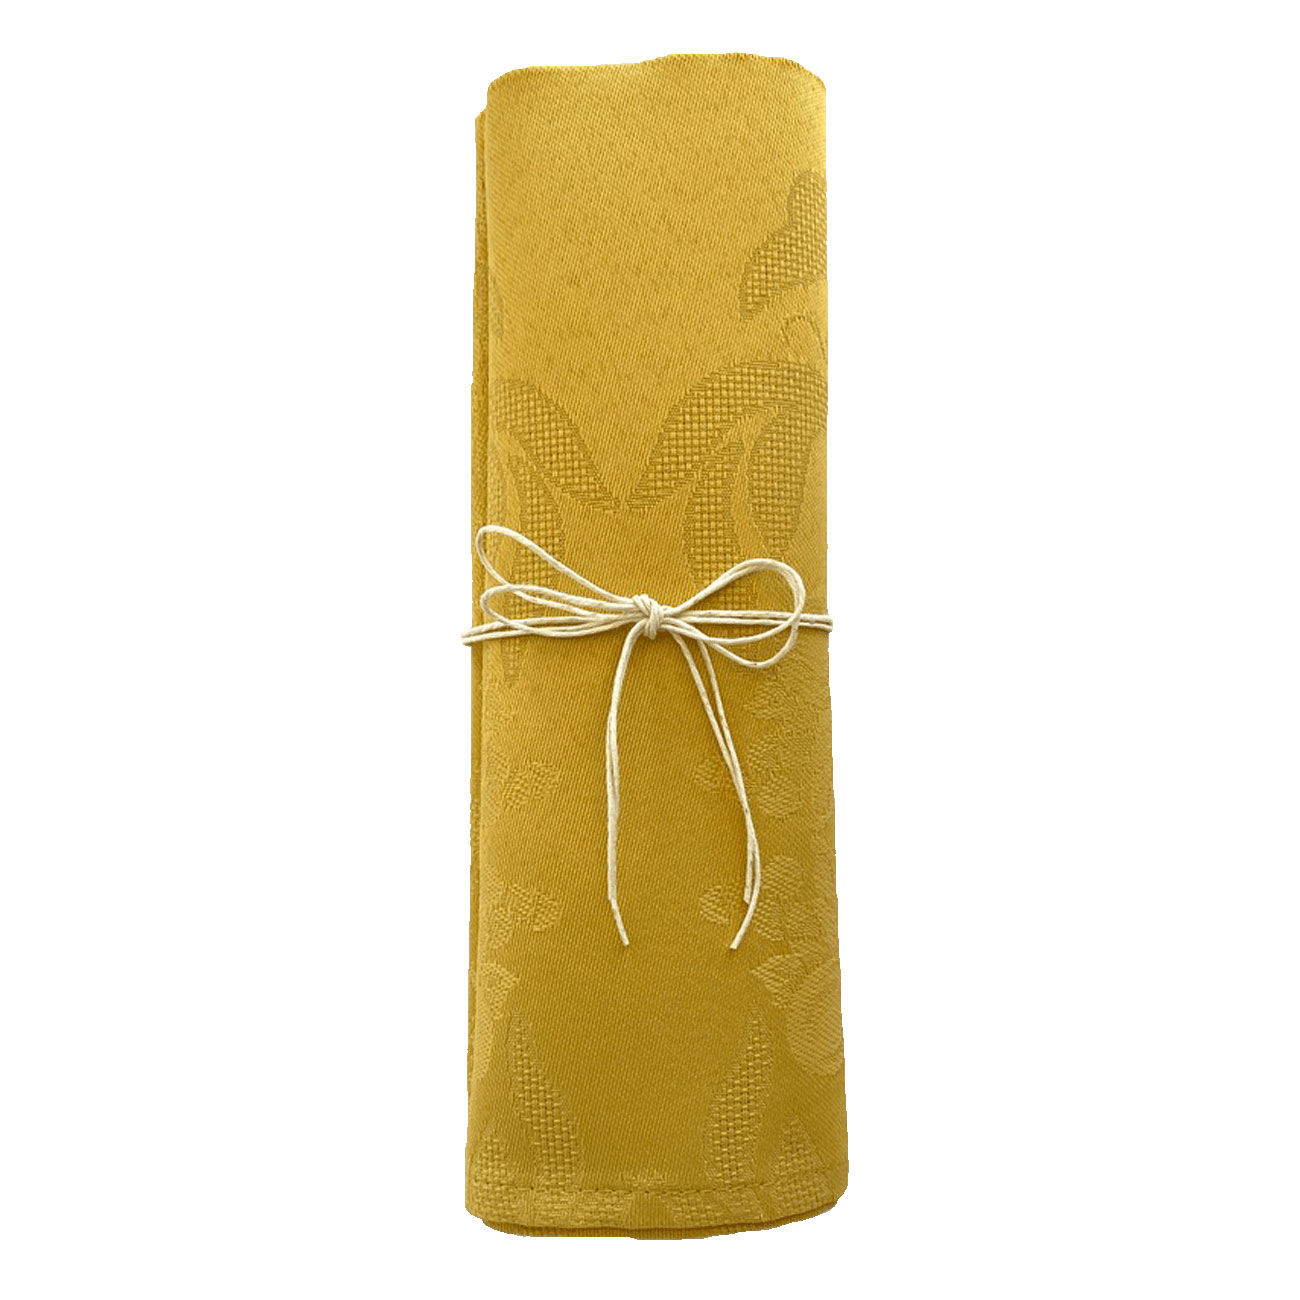 Stain and iron resistant cloth napkin